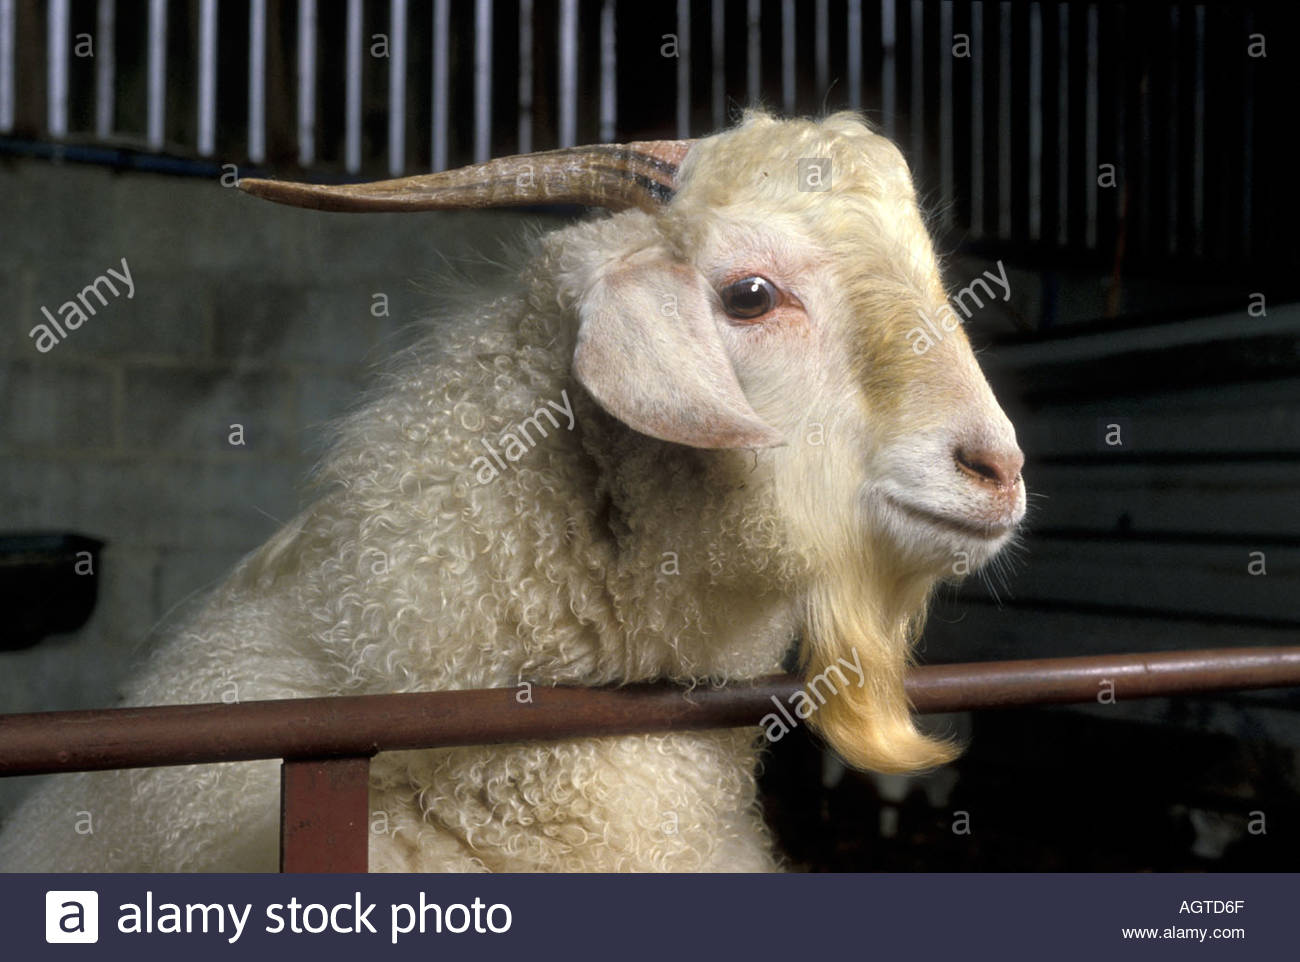 Cashmere goat farm UK Stock Photo: 2657646 - Alamy